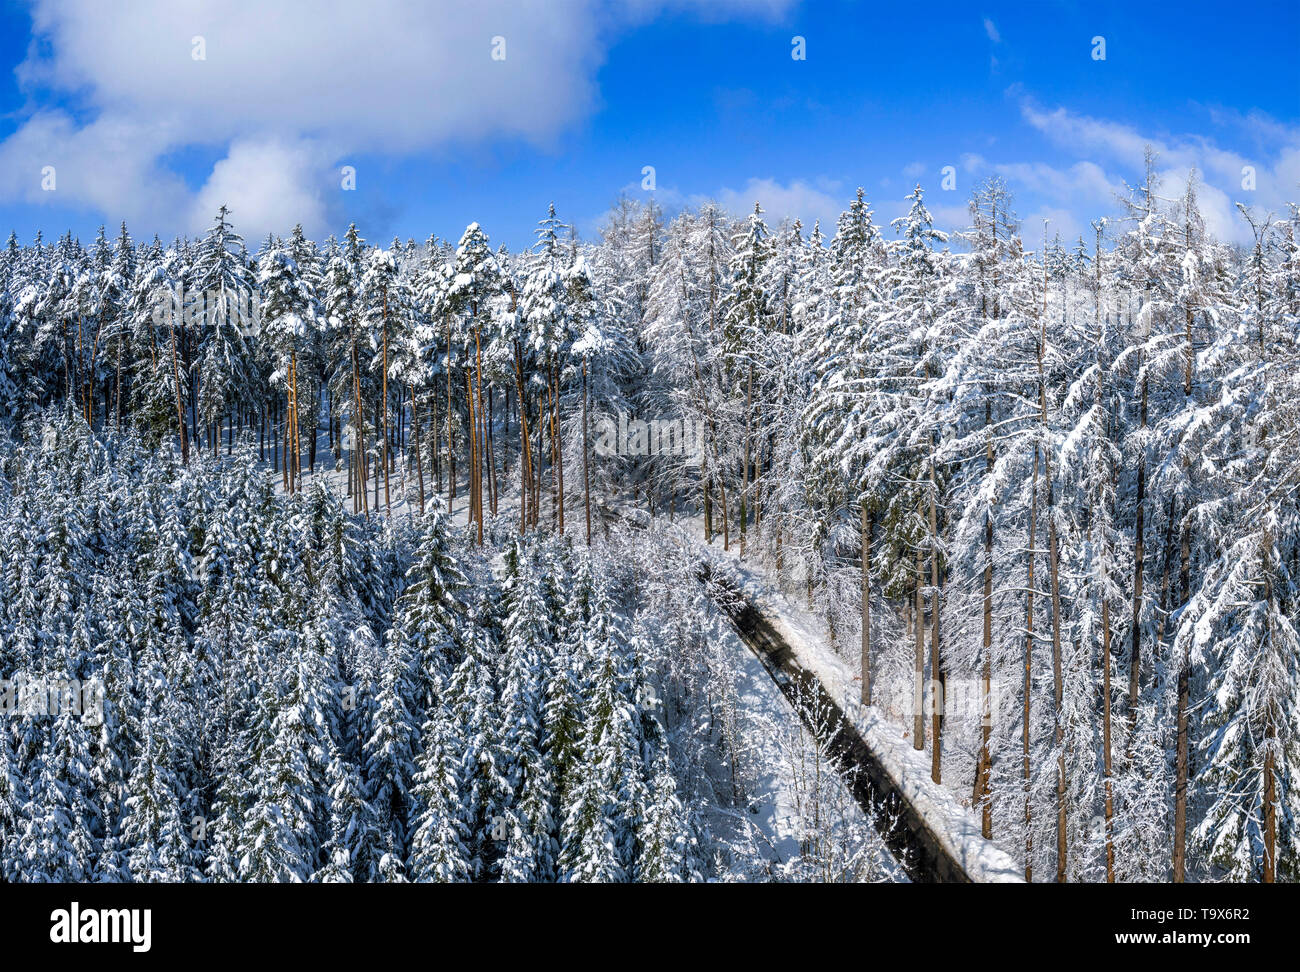 Winter scenery with snowy spruces, Tutzing, Upper Bavaria, Bavaria, Germany, Europe, Winterlandschaft mit schneebedeckten Fichten, Oberbayern, Bayern, - Stock Image